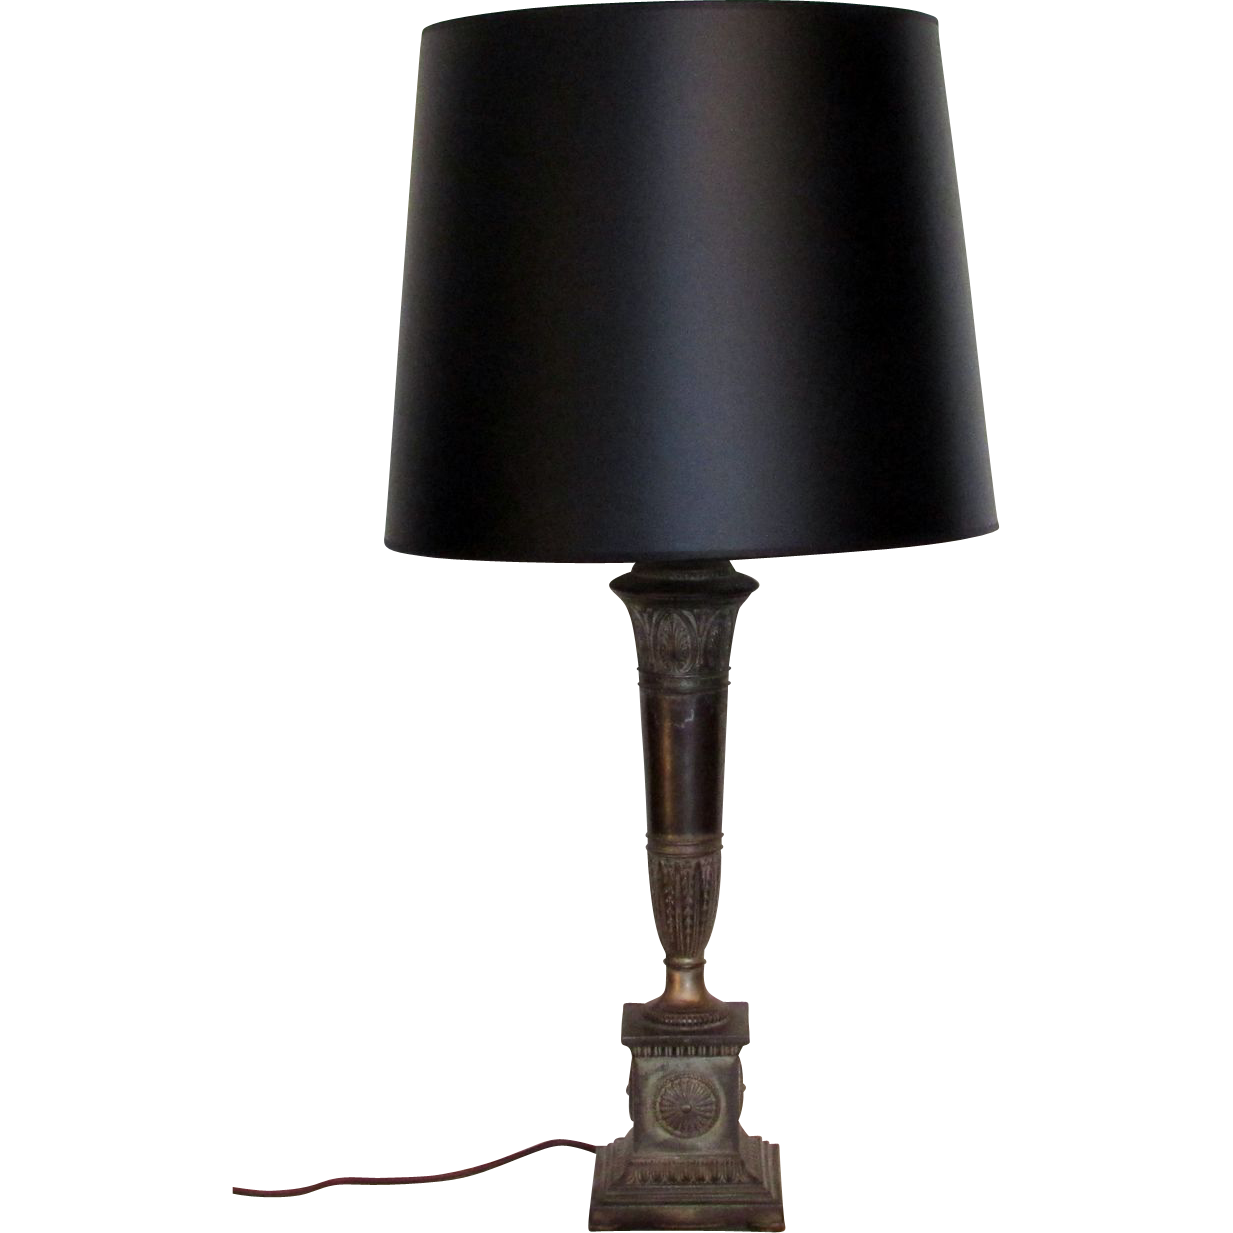 Vintage French Empire Table Lamp with Black Shade